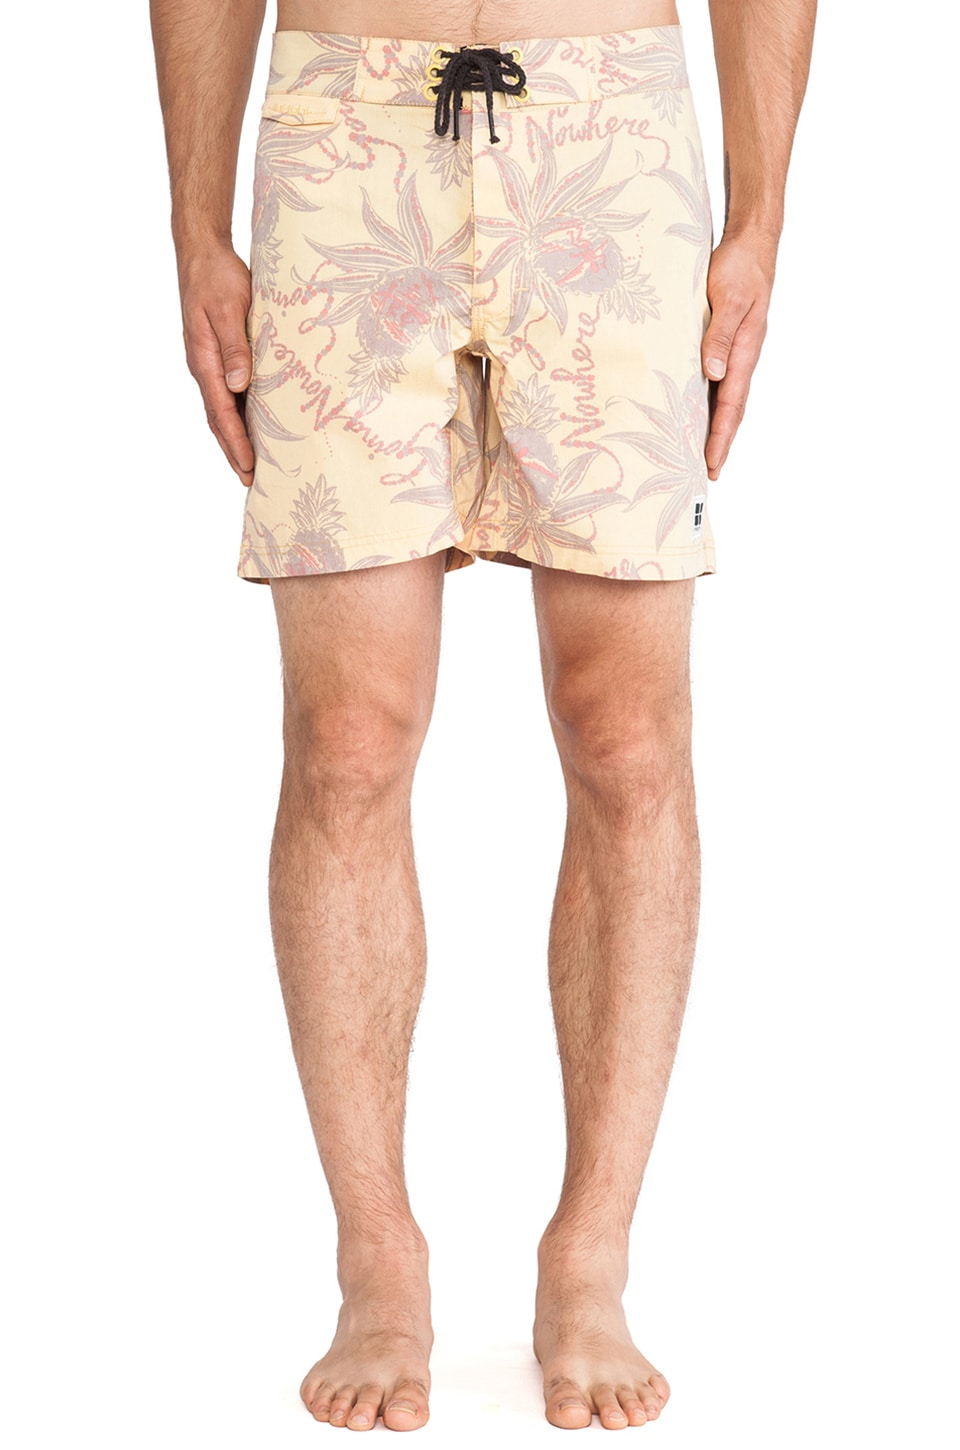 Insight Going Nowhere Boardshort in Going Nowhere Gold